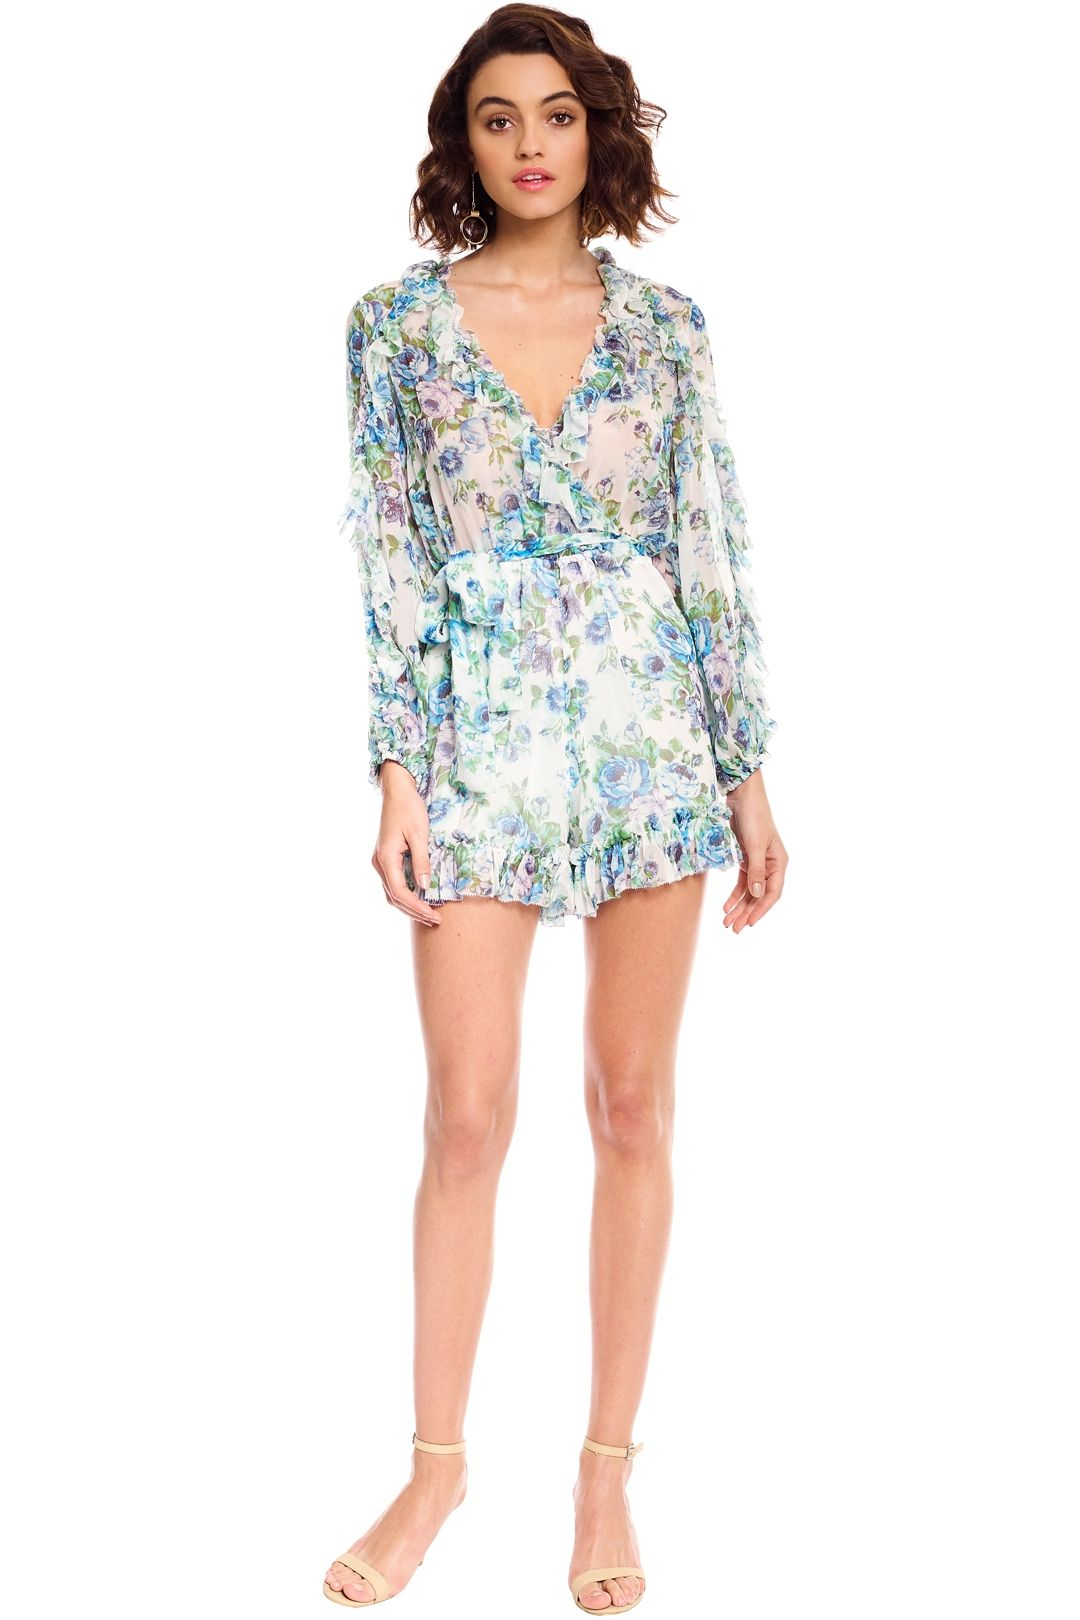 Zimmermann - Whitewave Ruffle Playsuit - Blue Floral - Front